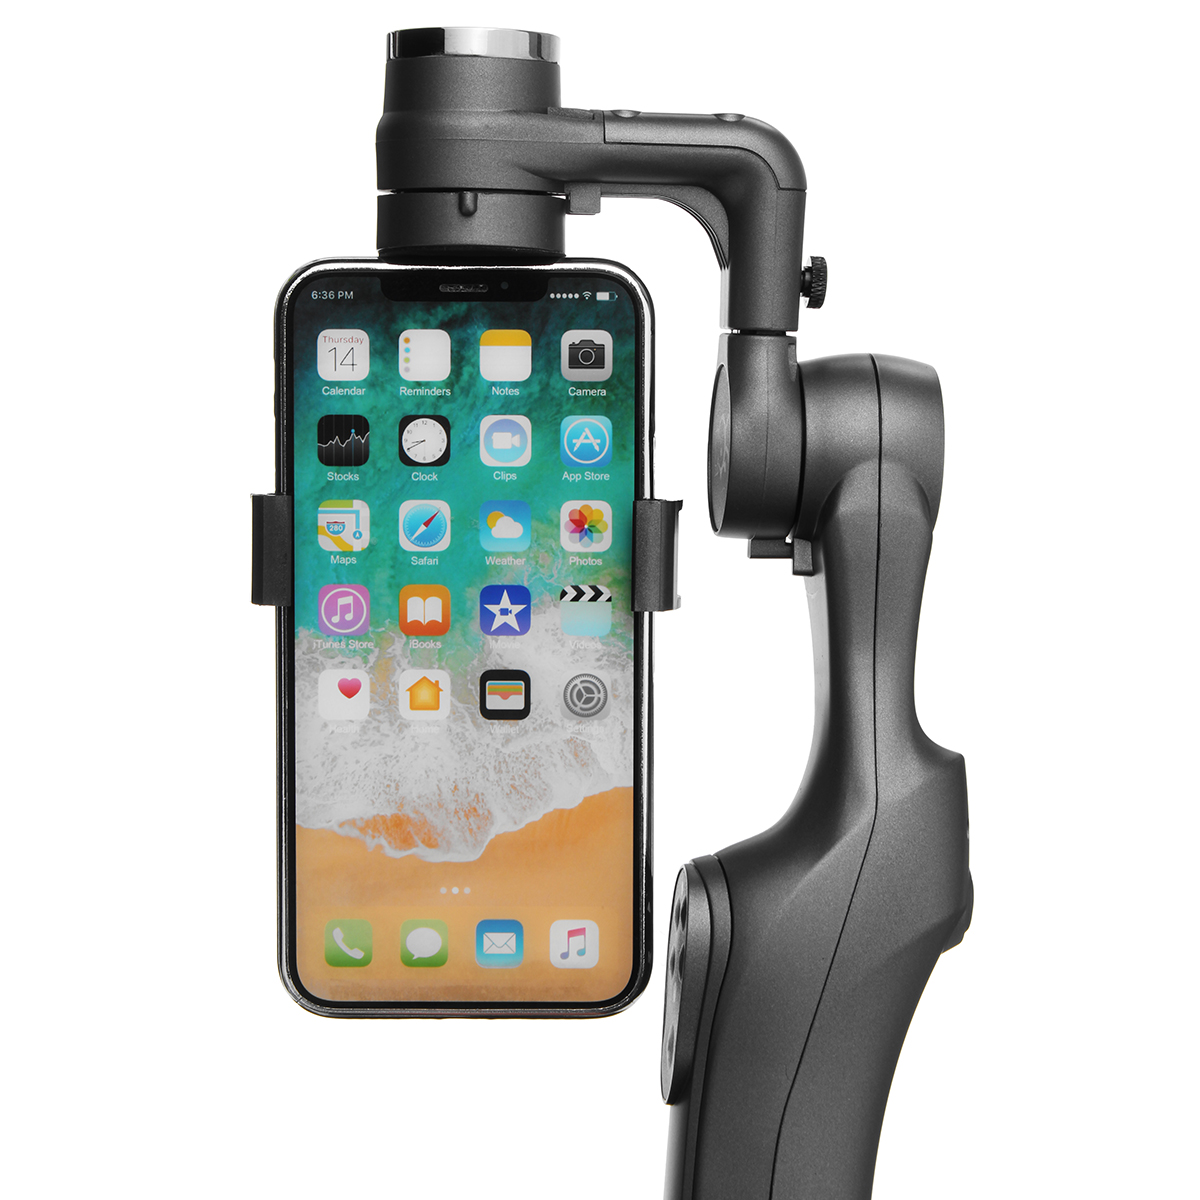 JJ-1 2-Axle Brushless Handheld Phone Stabilizer 330 Degree Smartphone Gimbal Holder Mount Handheld Gimbal Accessories xjjj jj 2 3 axis brushless handheld gimbal stabilizer 360 degree shooting fitting smart phone